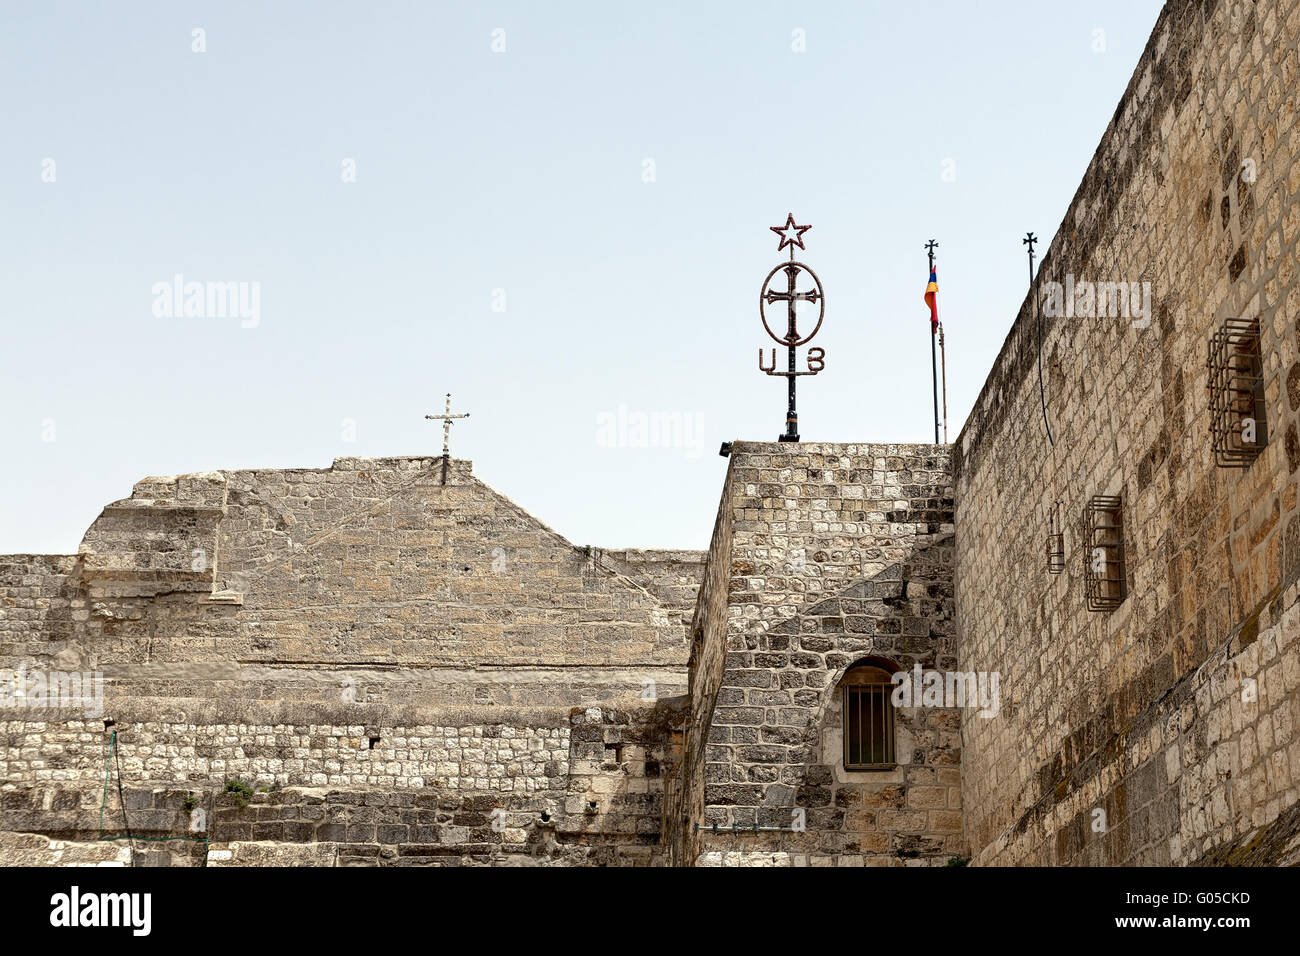 The walls of the Basilica of Nativity in Bethlehem - Stock Image